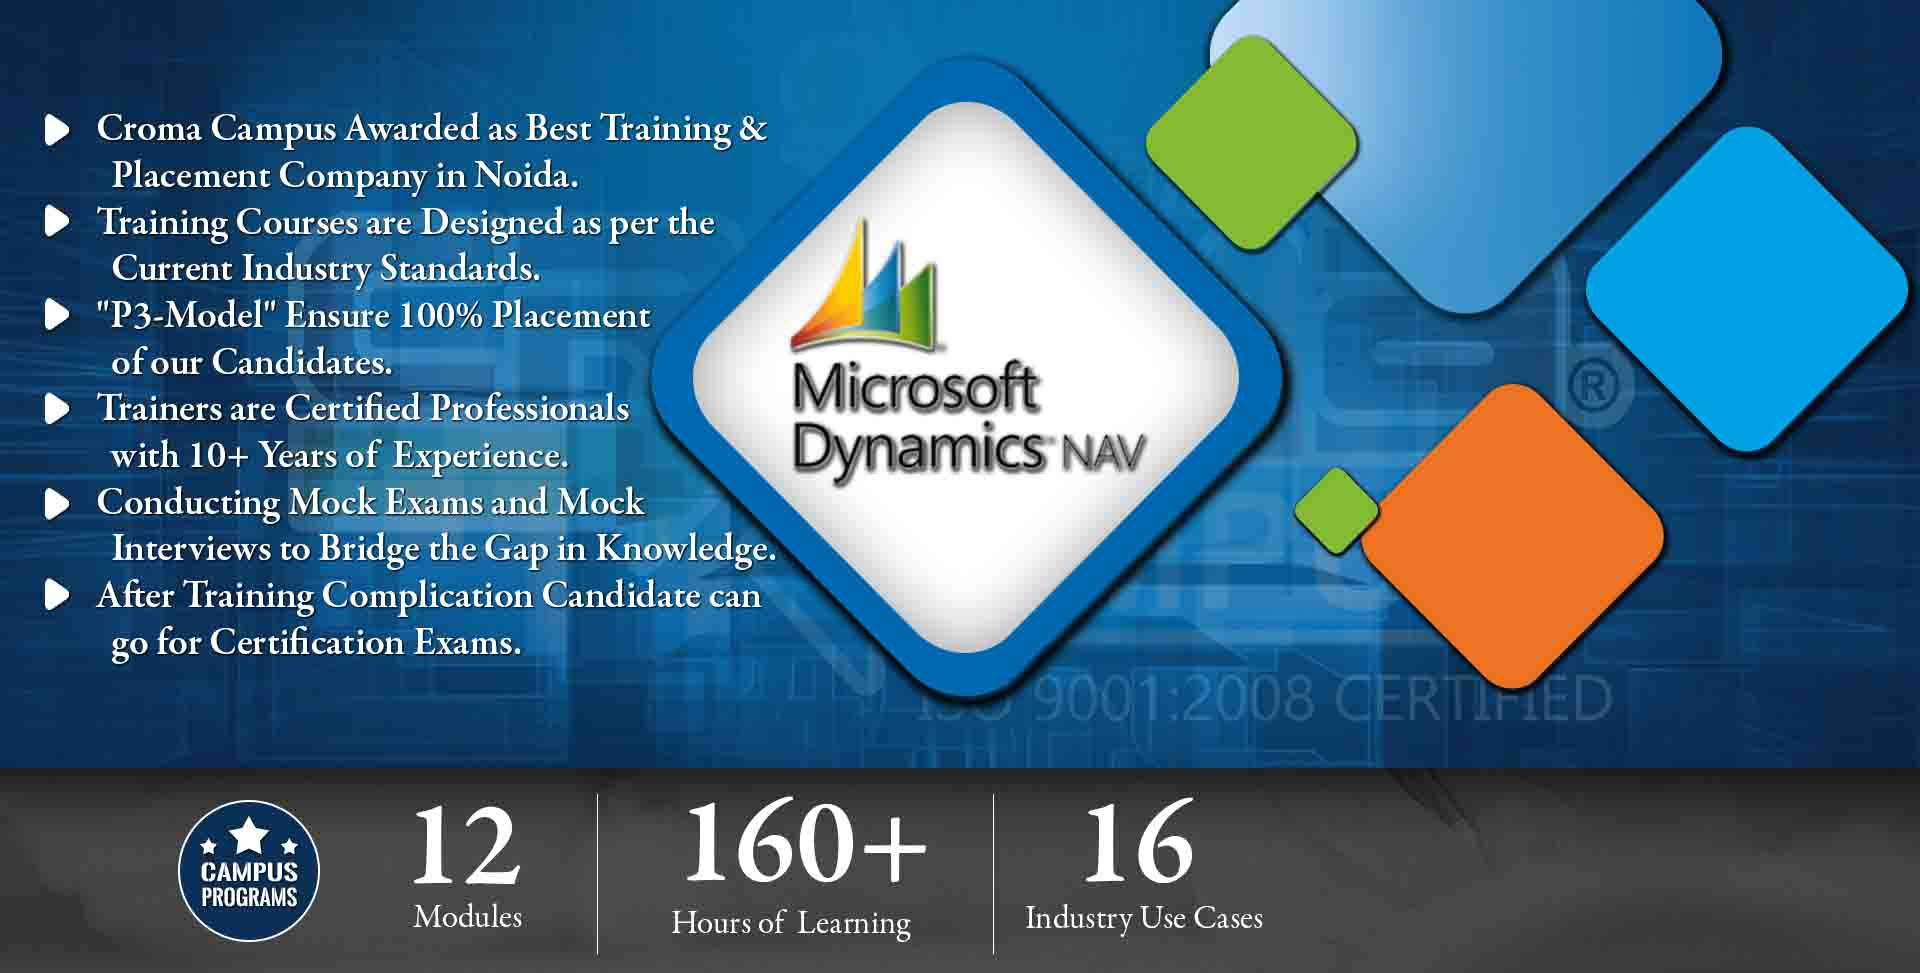 Microsoft Dynamics NAV  Training in Noida- Croma Campus